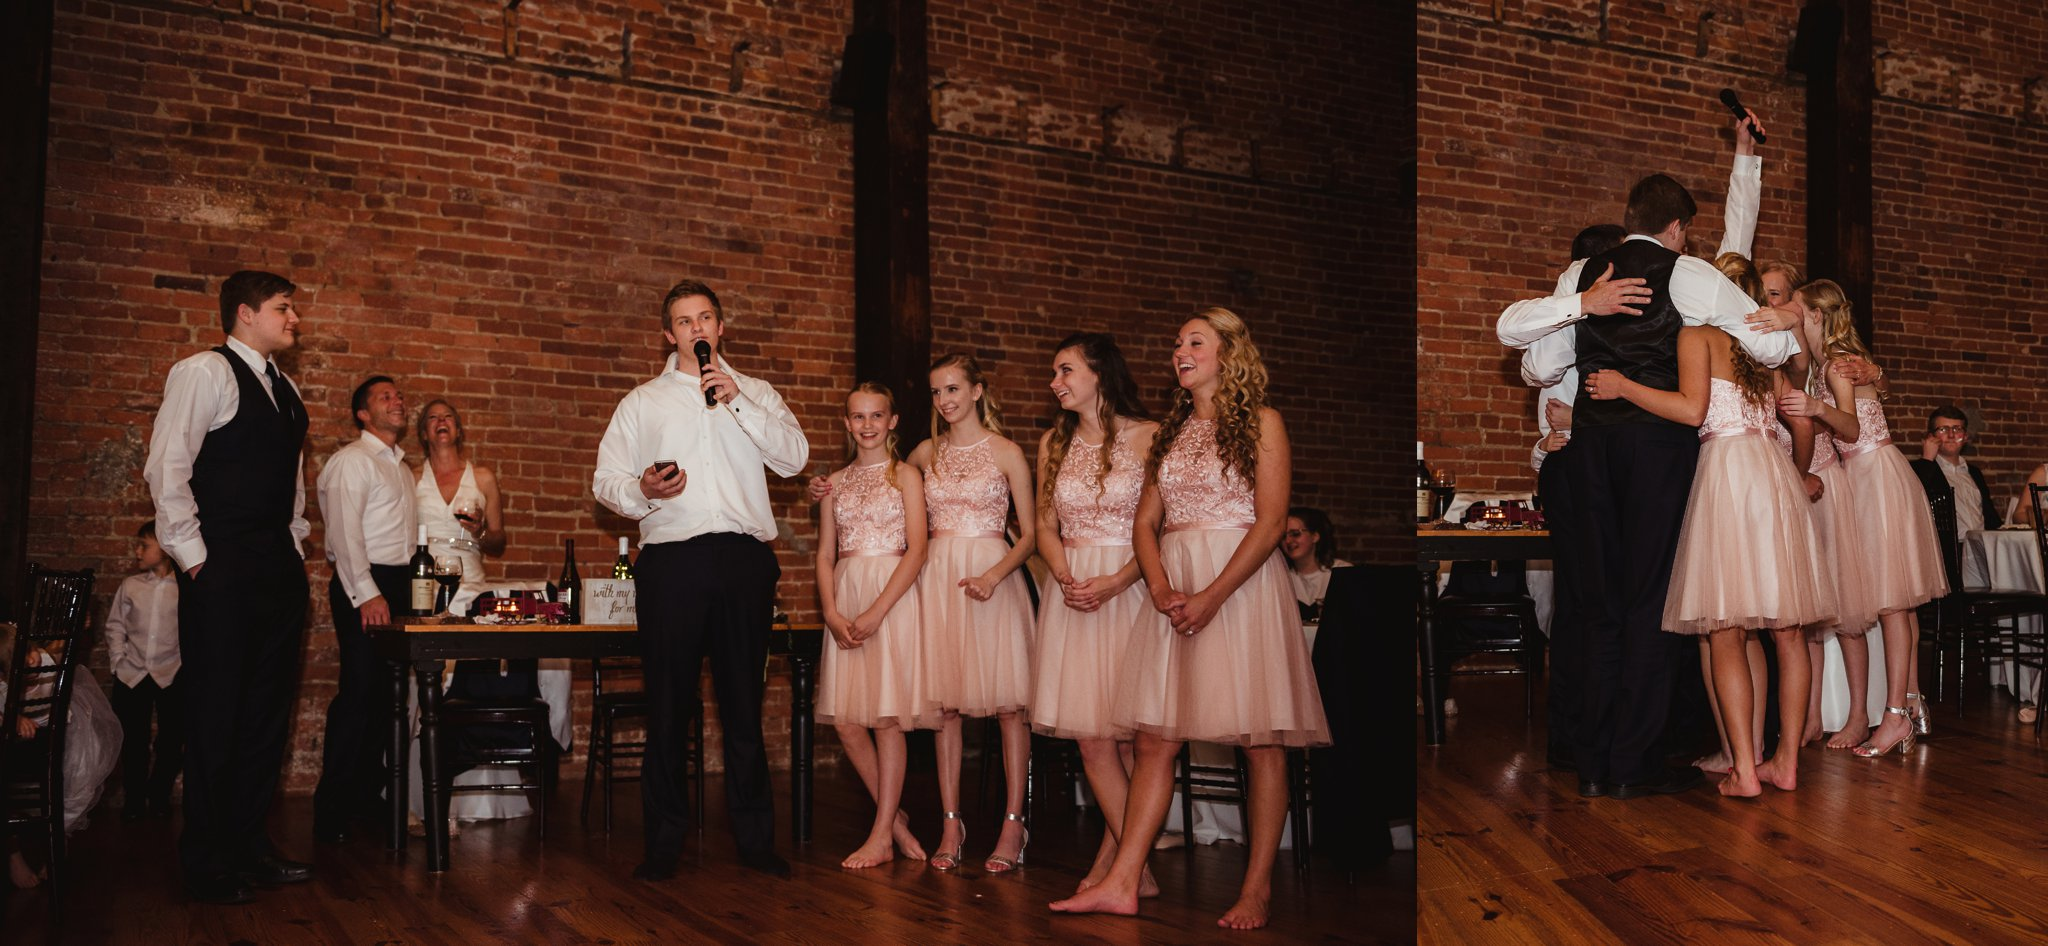 The family made special toasts and had a group hug at their parents' wedding reception at Cross and Main in Youngsville, NC, images taken by Rose Trail Images.